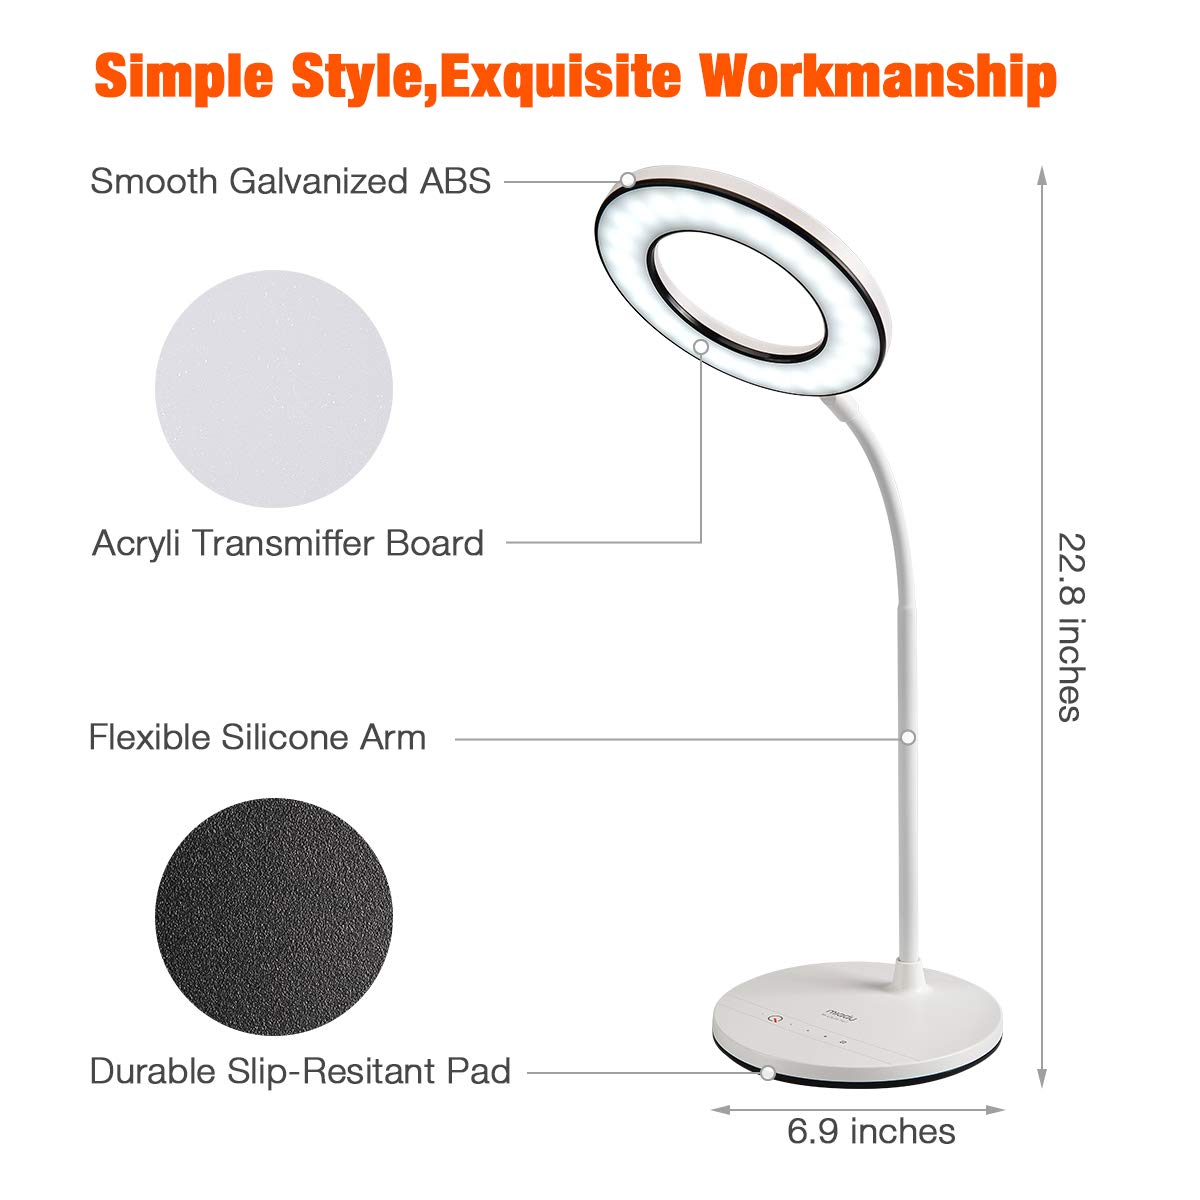 Miady LED Desk Lamp Eye-Caring Table Lamp, 3 Color Modes with 4 Levels of Brightness, Dimmable Office Lamp with Adapter, Touch Control Sensitive, 360° Flexible by Miady (Image #5)